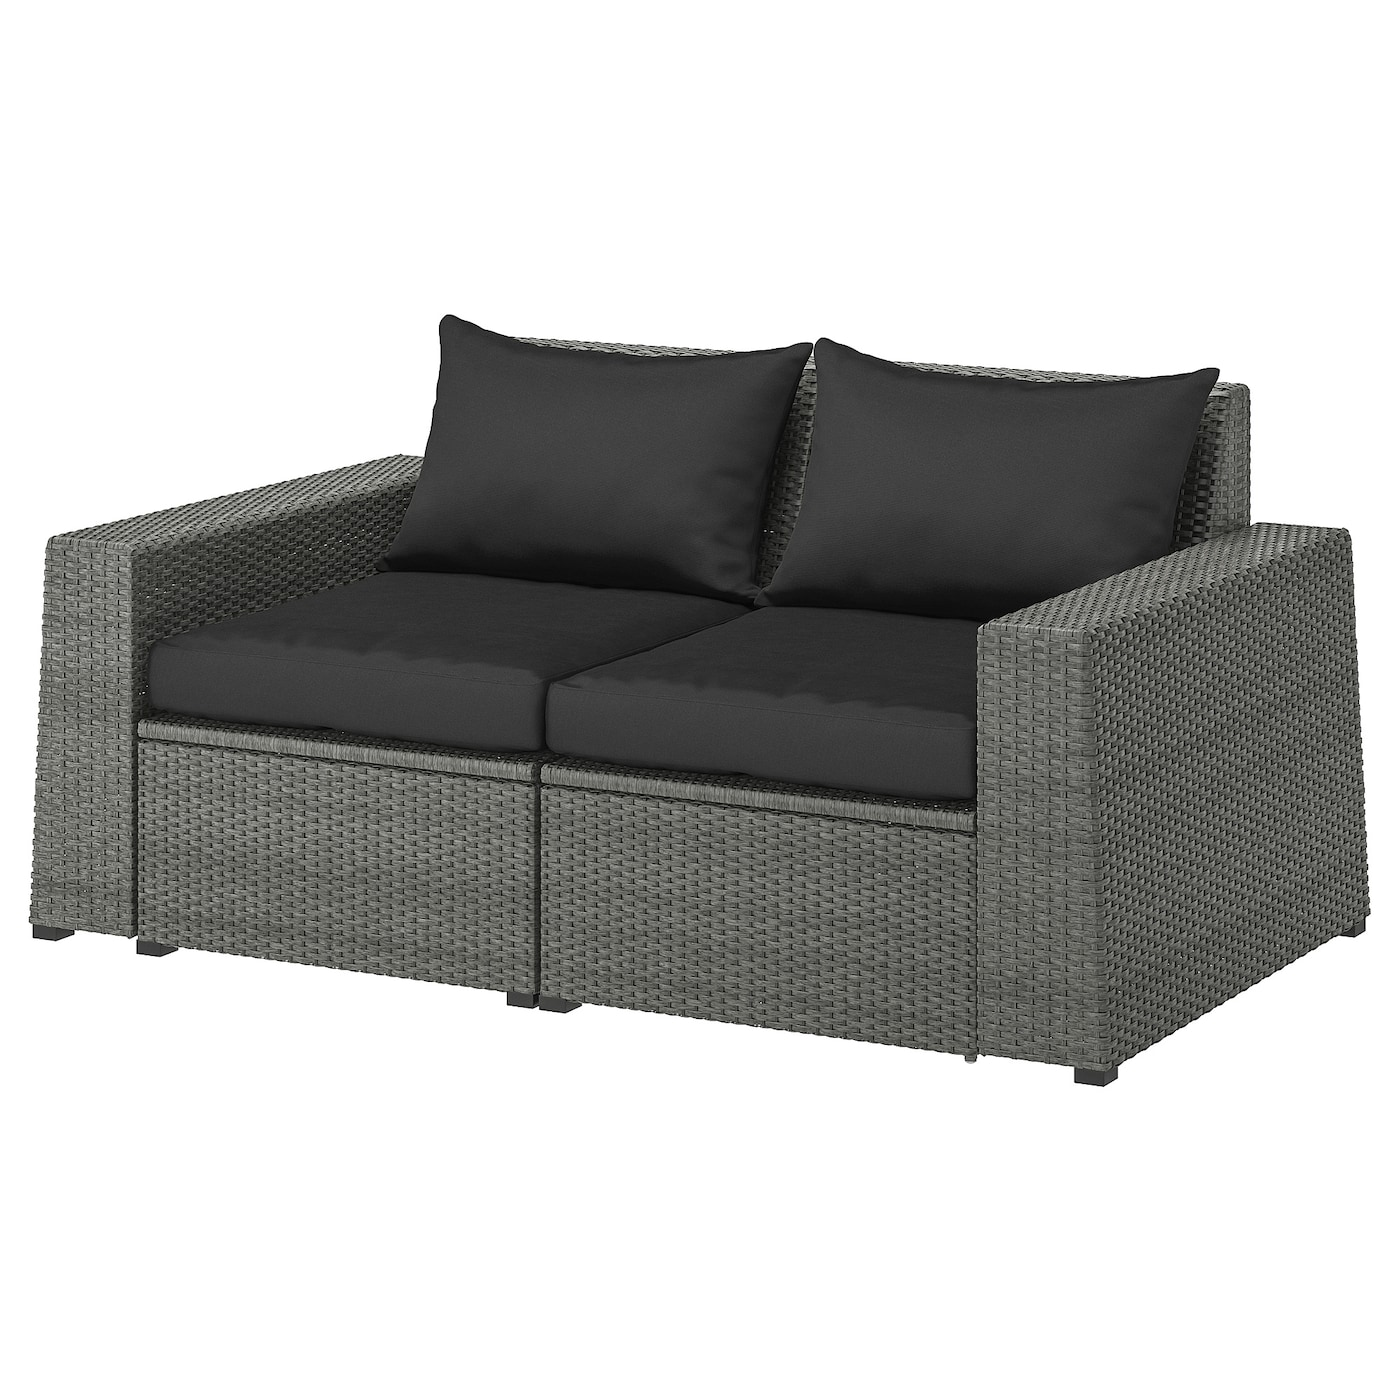 IKEA SOLLERÖN 2-seat modular sofa, outdoor Practical storage space under the seat.